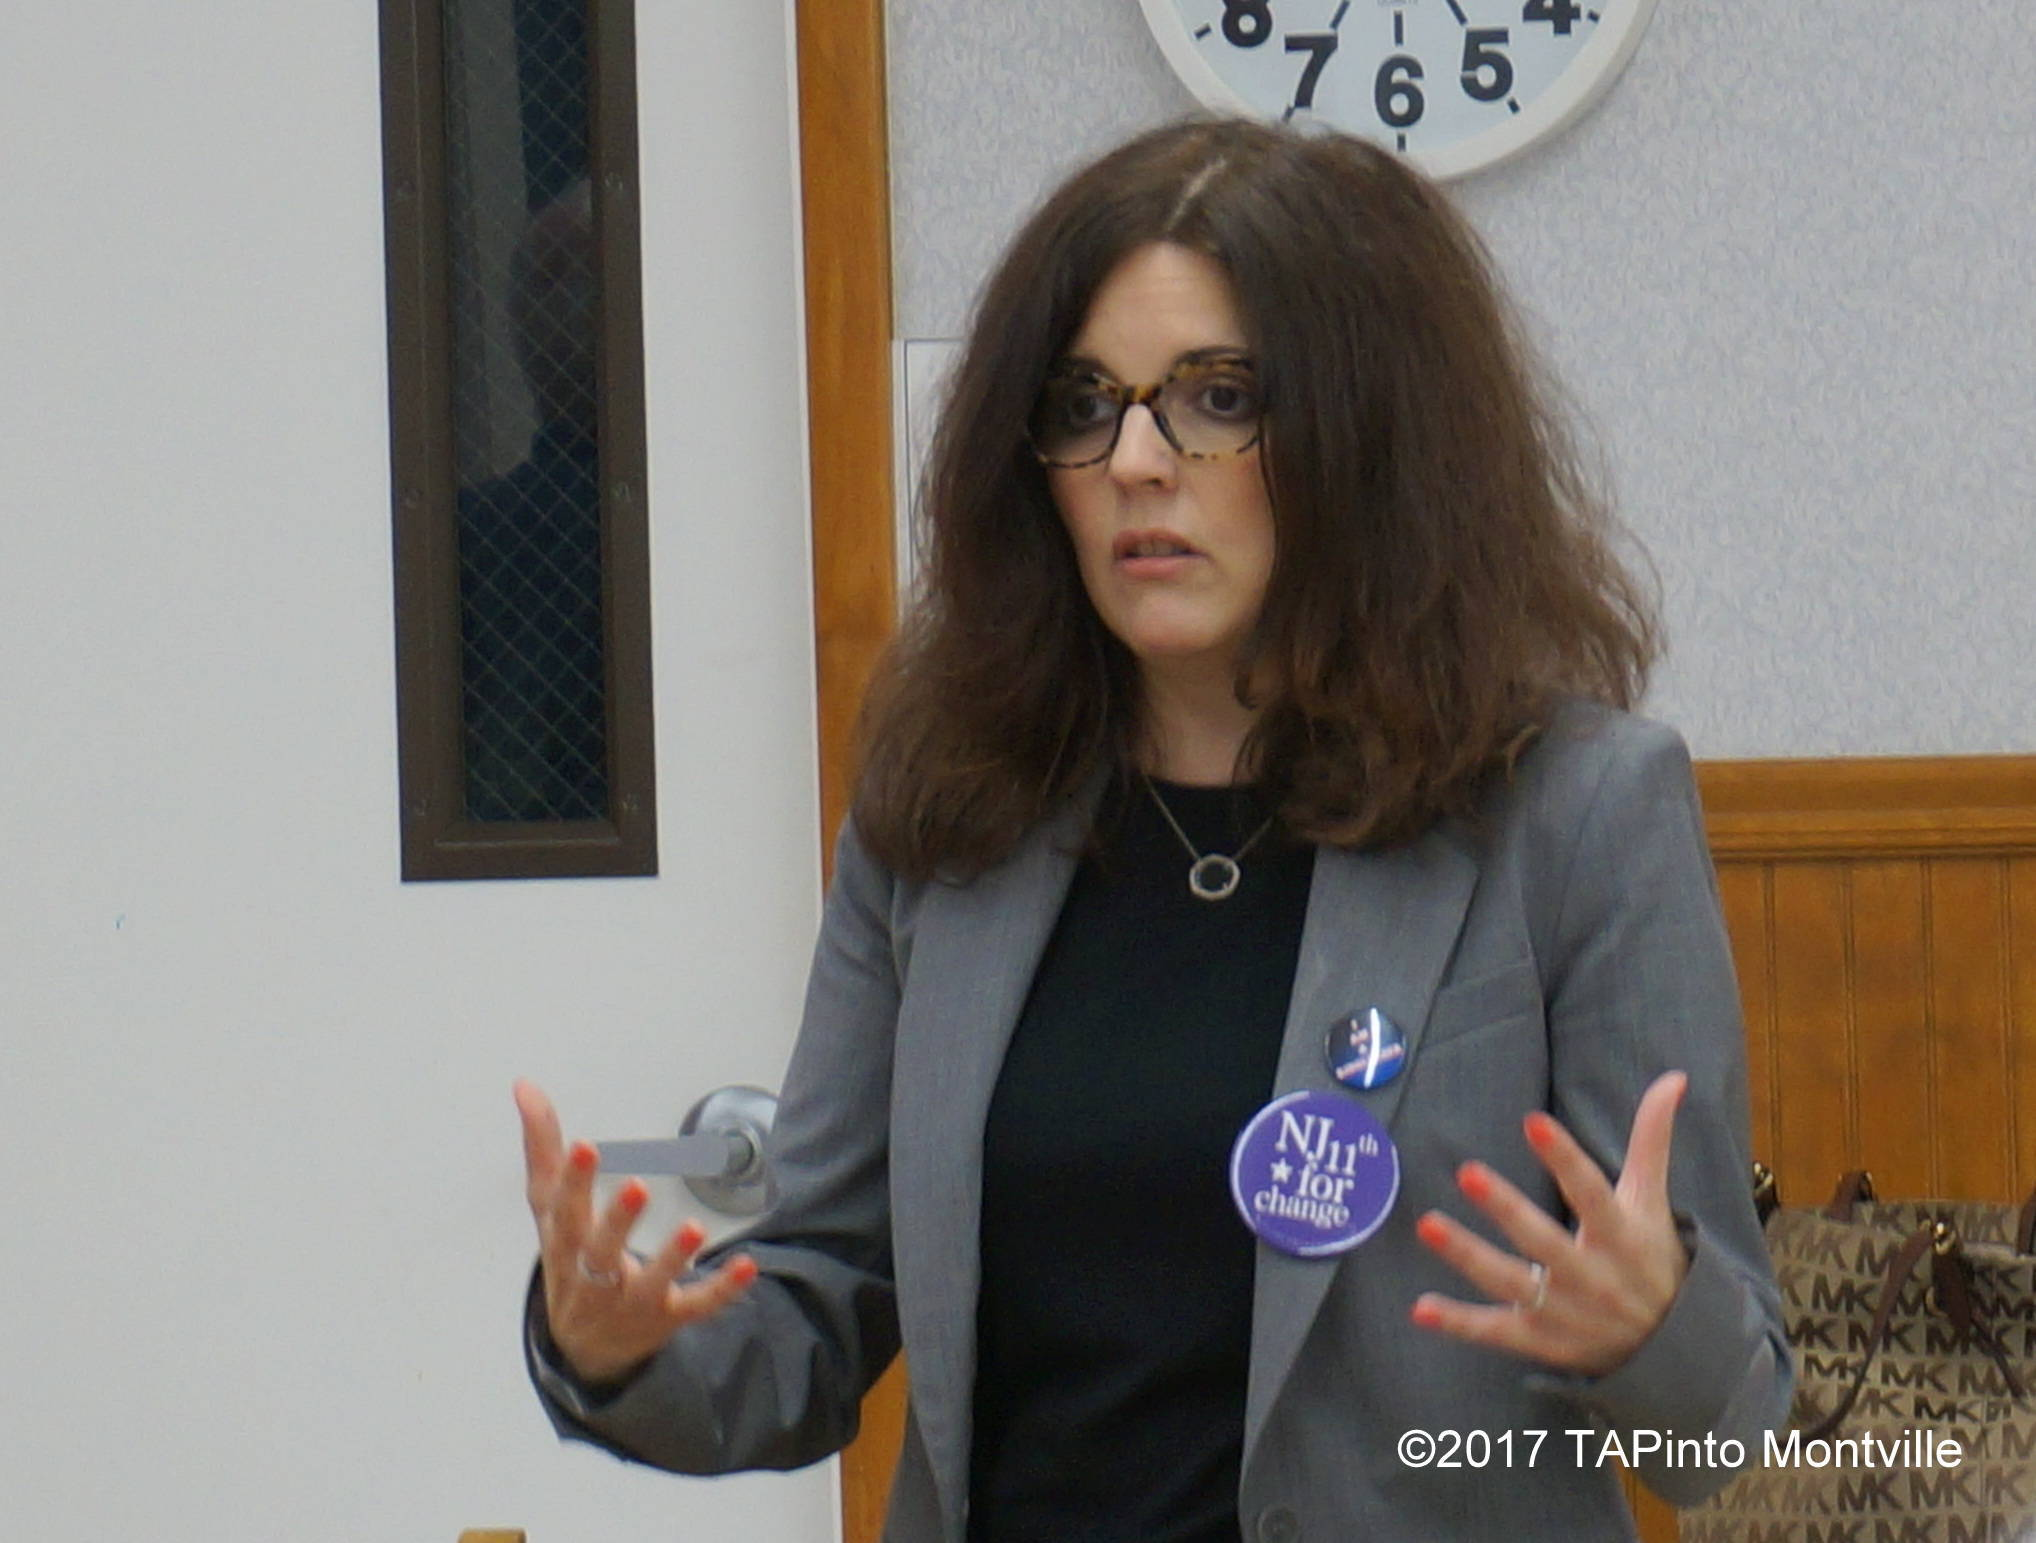 c137c64e59c1893bca41_a_Saily_Avelenda_speaks_at_a_meeting_of_the_Denville_Democrats_2.JPG